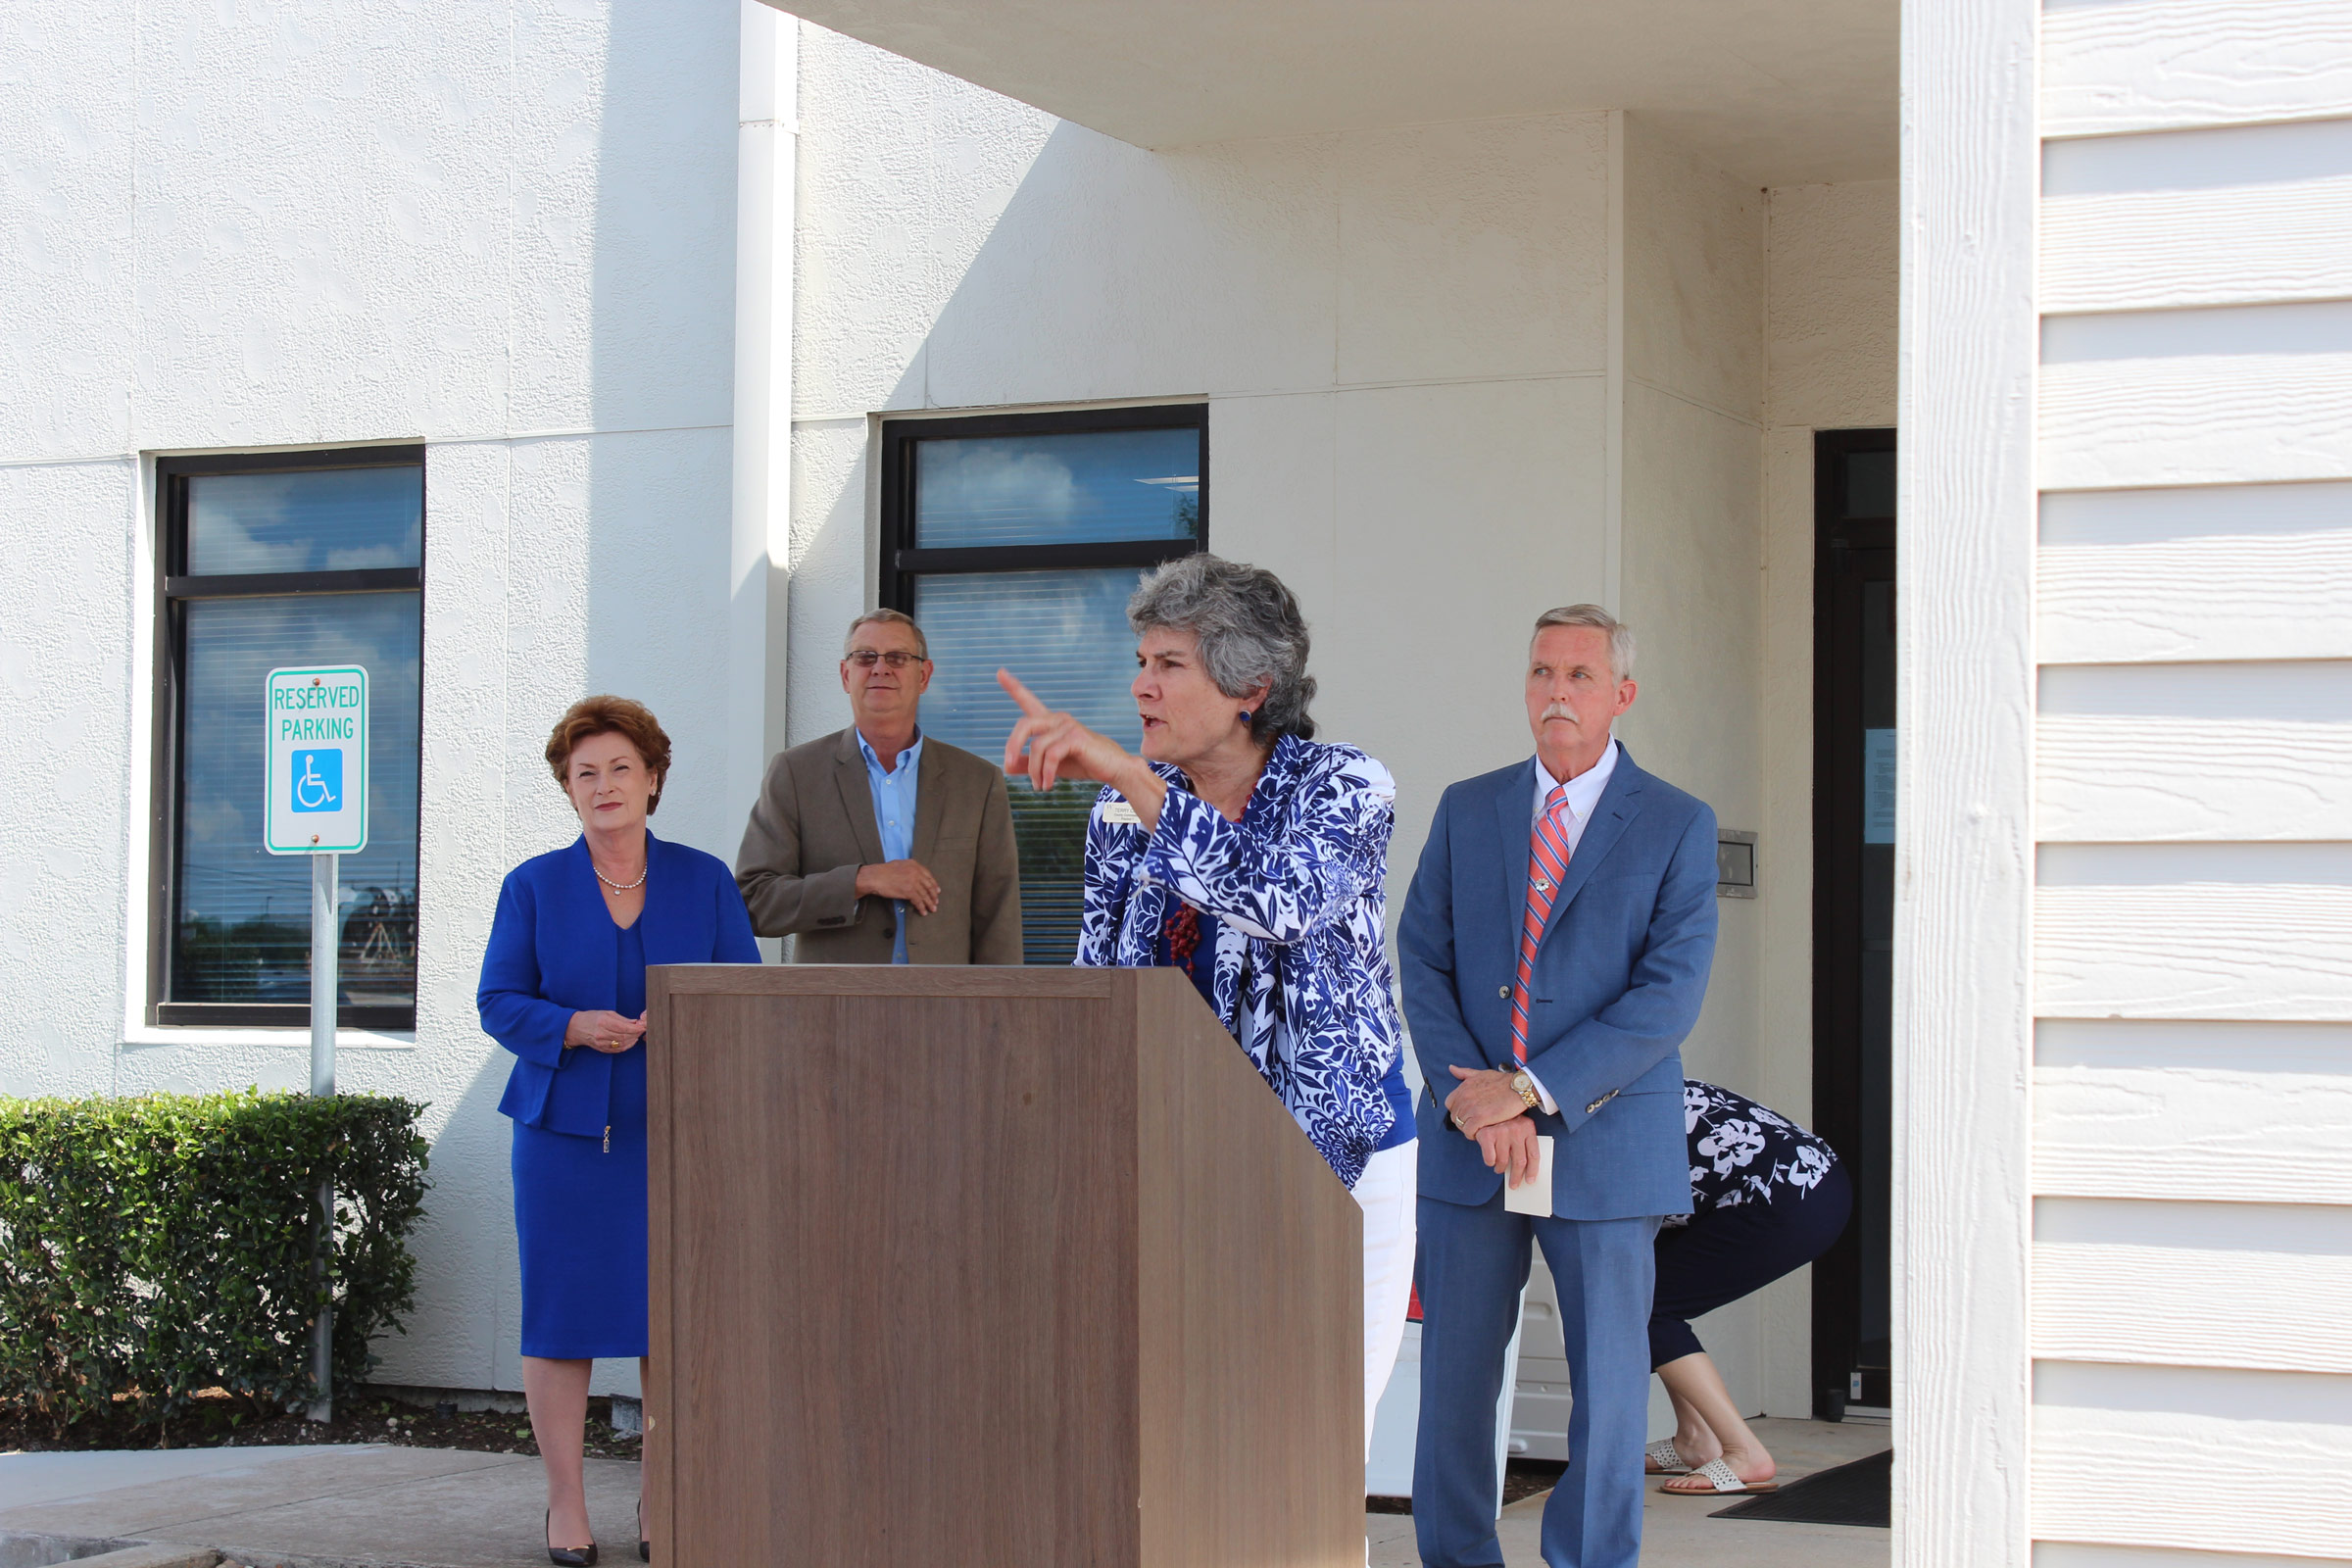 Commissioner Cook speaks at the outdoors ribbon cutting ceremony for the WCCHD. Marlene McMichael, Board Chair, John Teel, Exec. Director, and Precinct 4 Commissioner Larry Madsen are in the background.